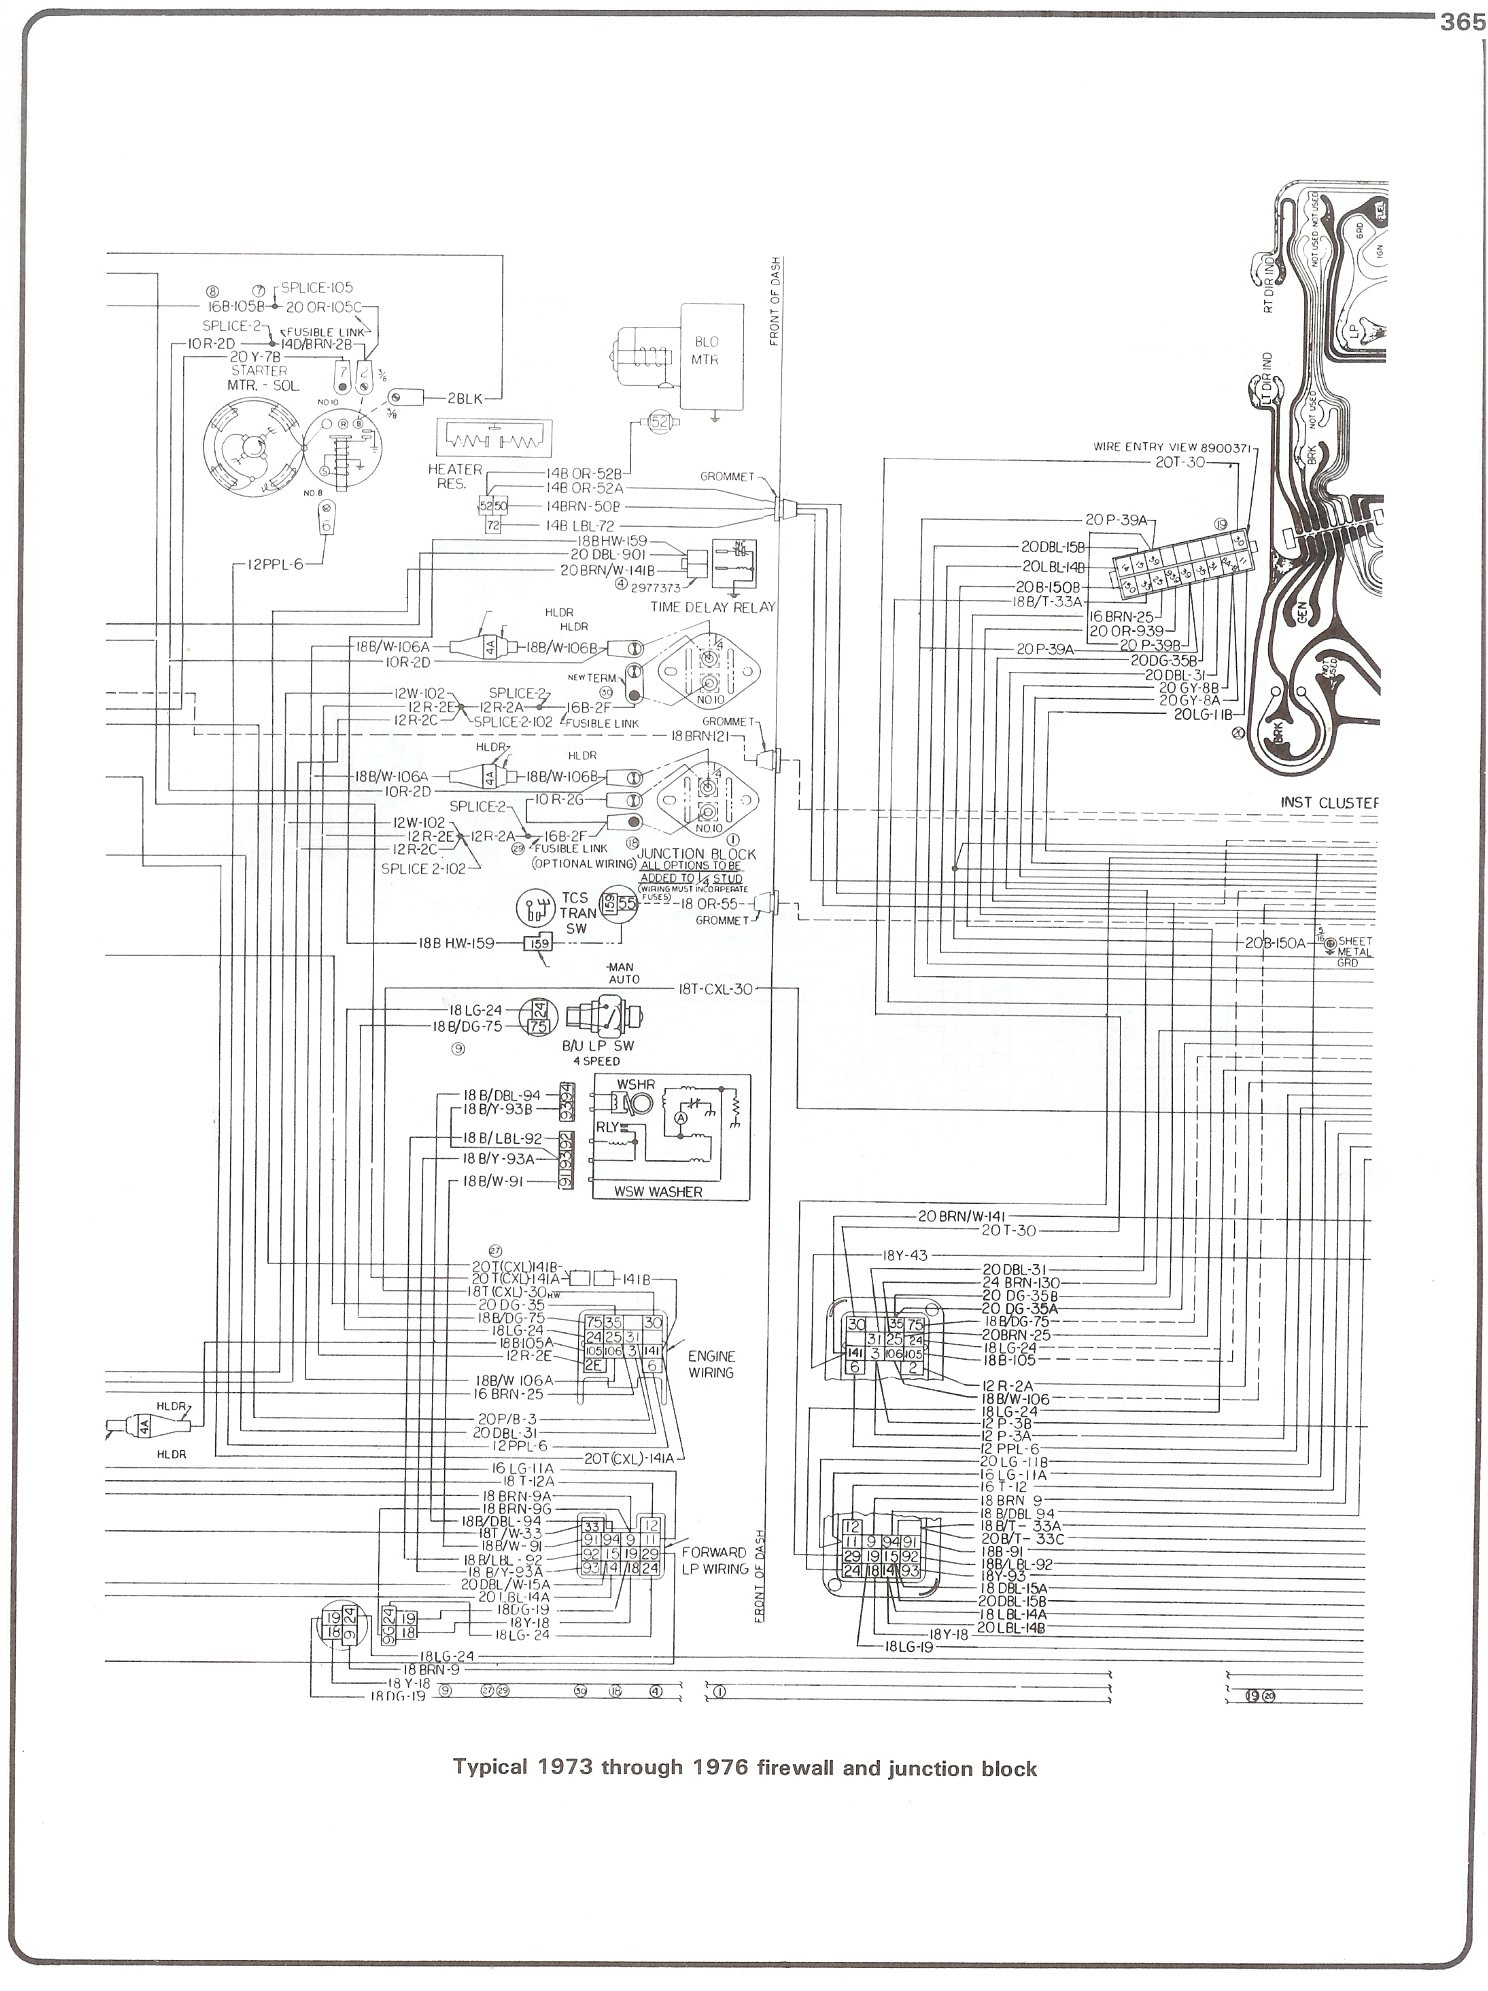 73 76_firewall_junct complete 73 87 wiring diagrams 1978 chevy truck fuse box diagram at nearapp.co